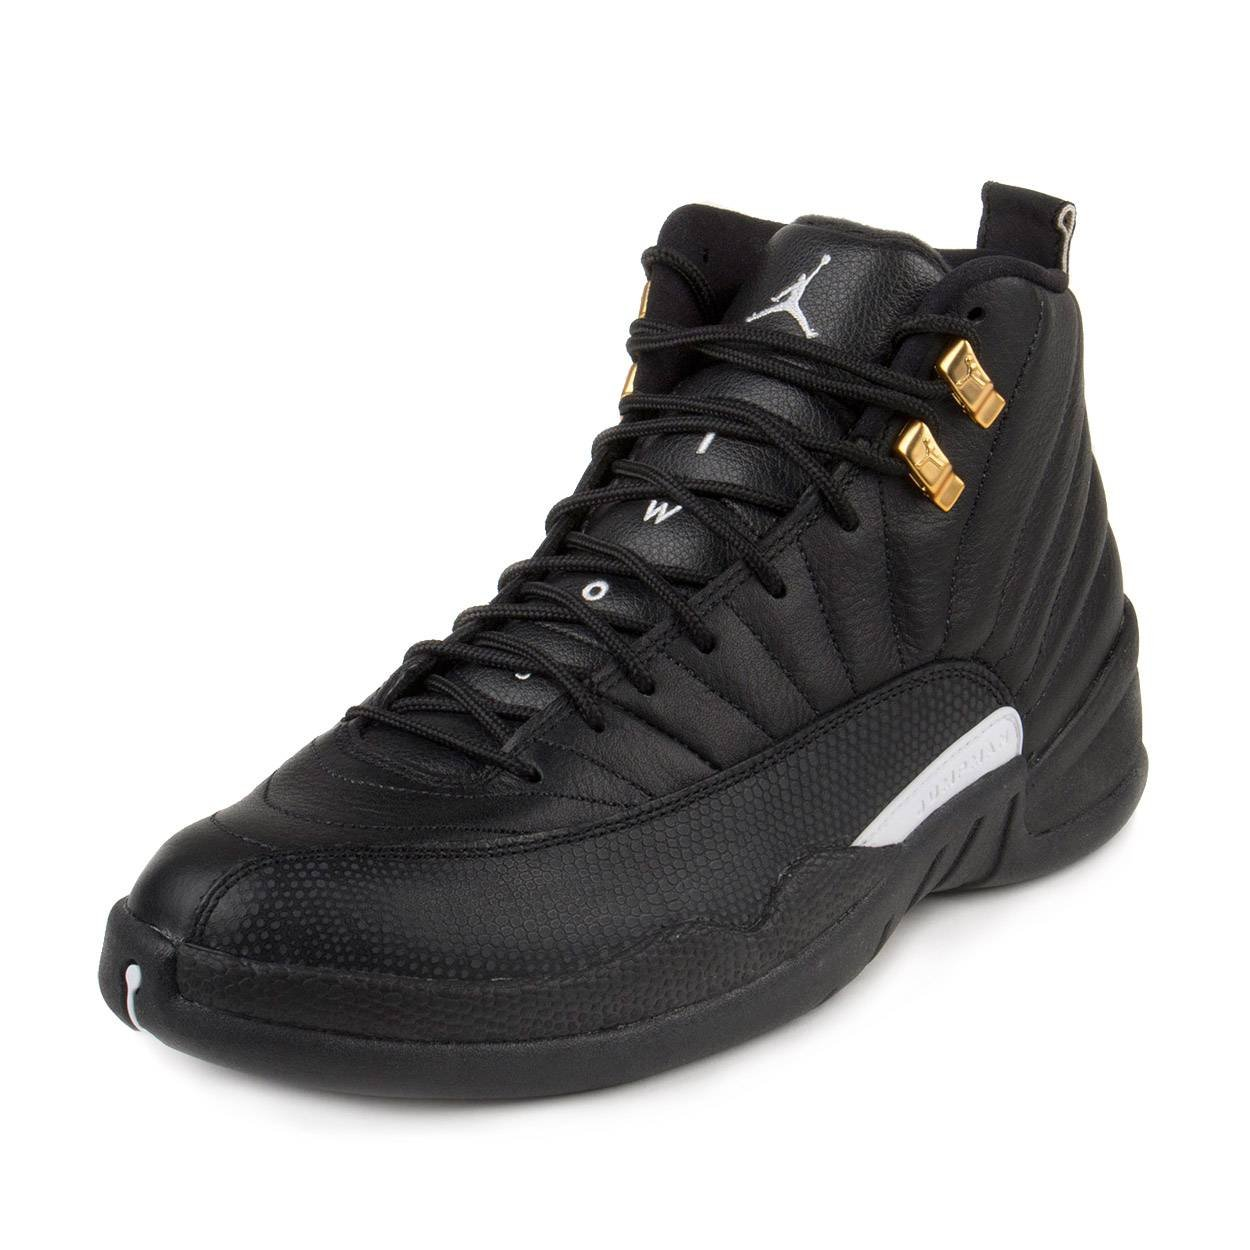 b5c27dc6828 Galleon - Air Jordan 12 Retro